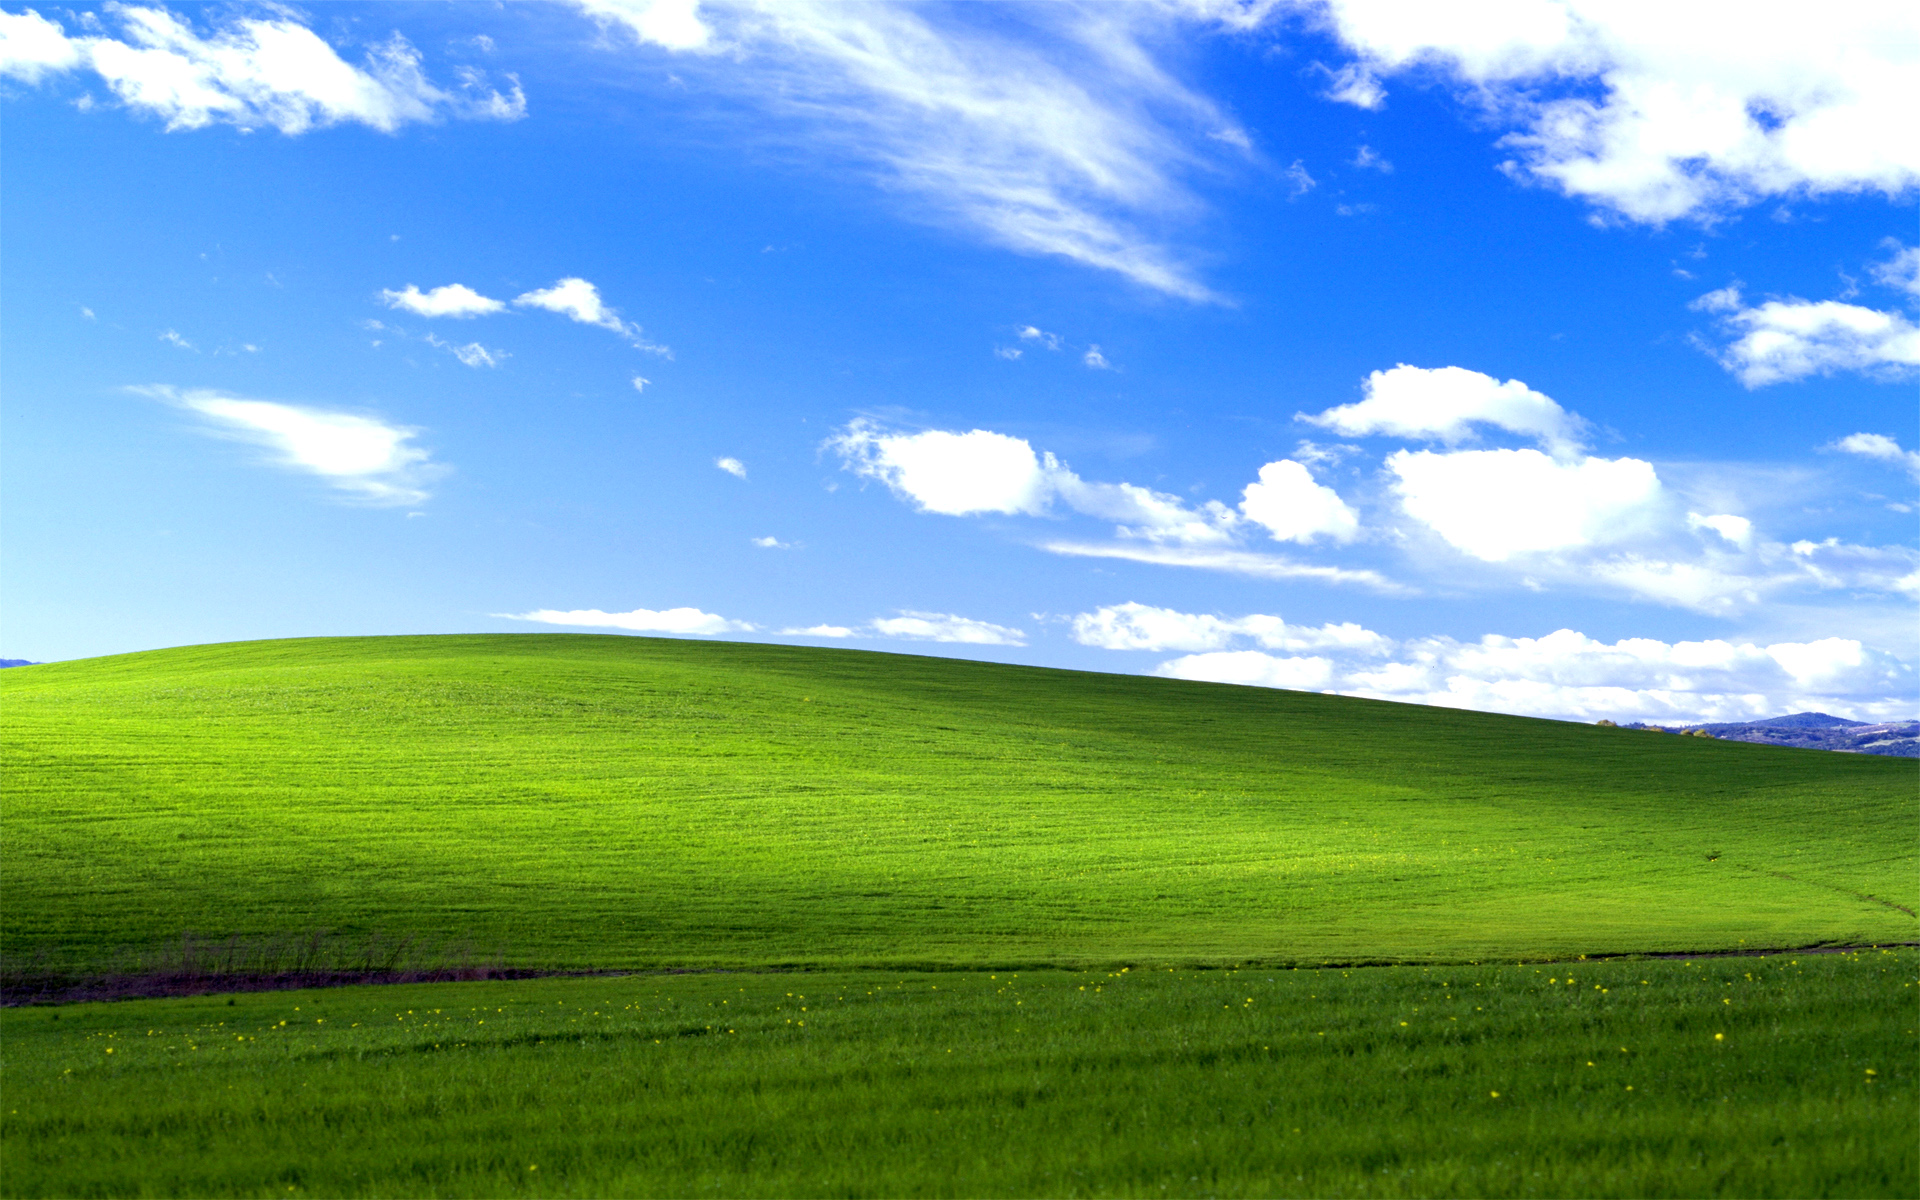 Windows Xp+Wallpaper